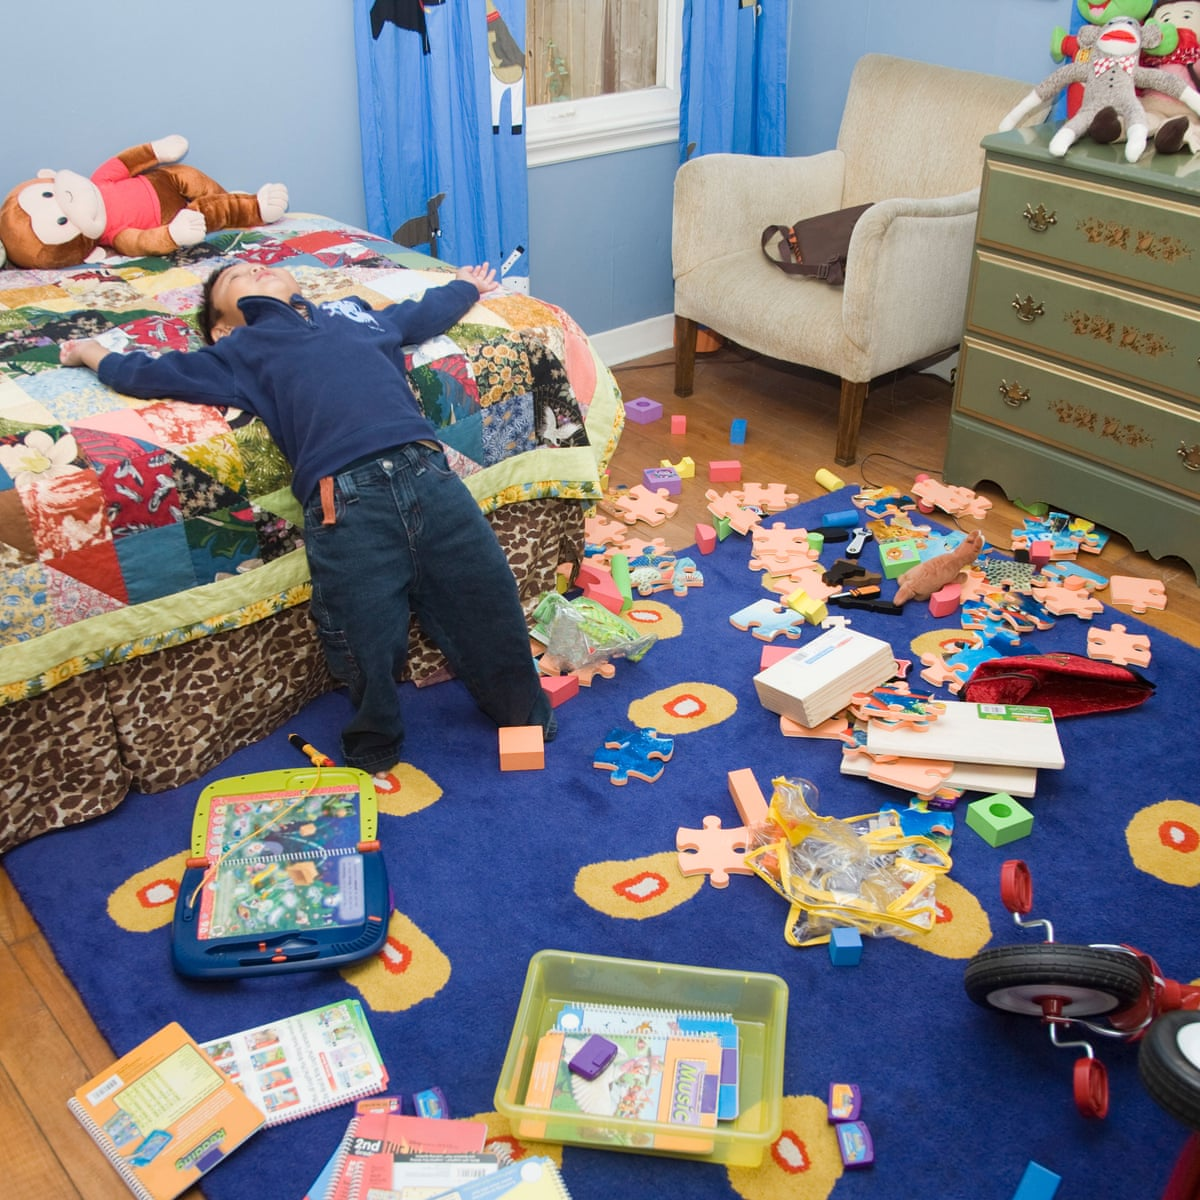 Drowning in kid clutter? Here's how to organise their stuff | Life and  style | The Guardian